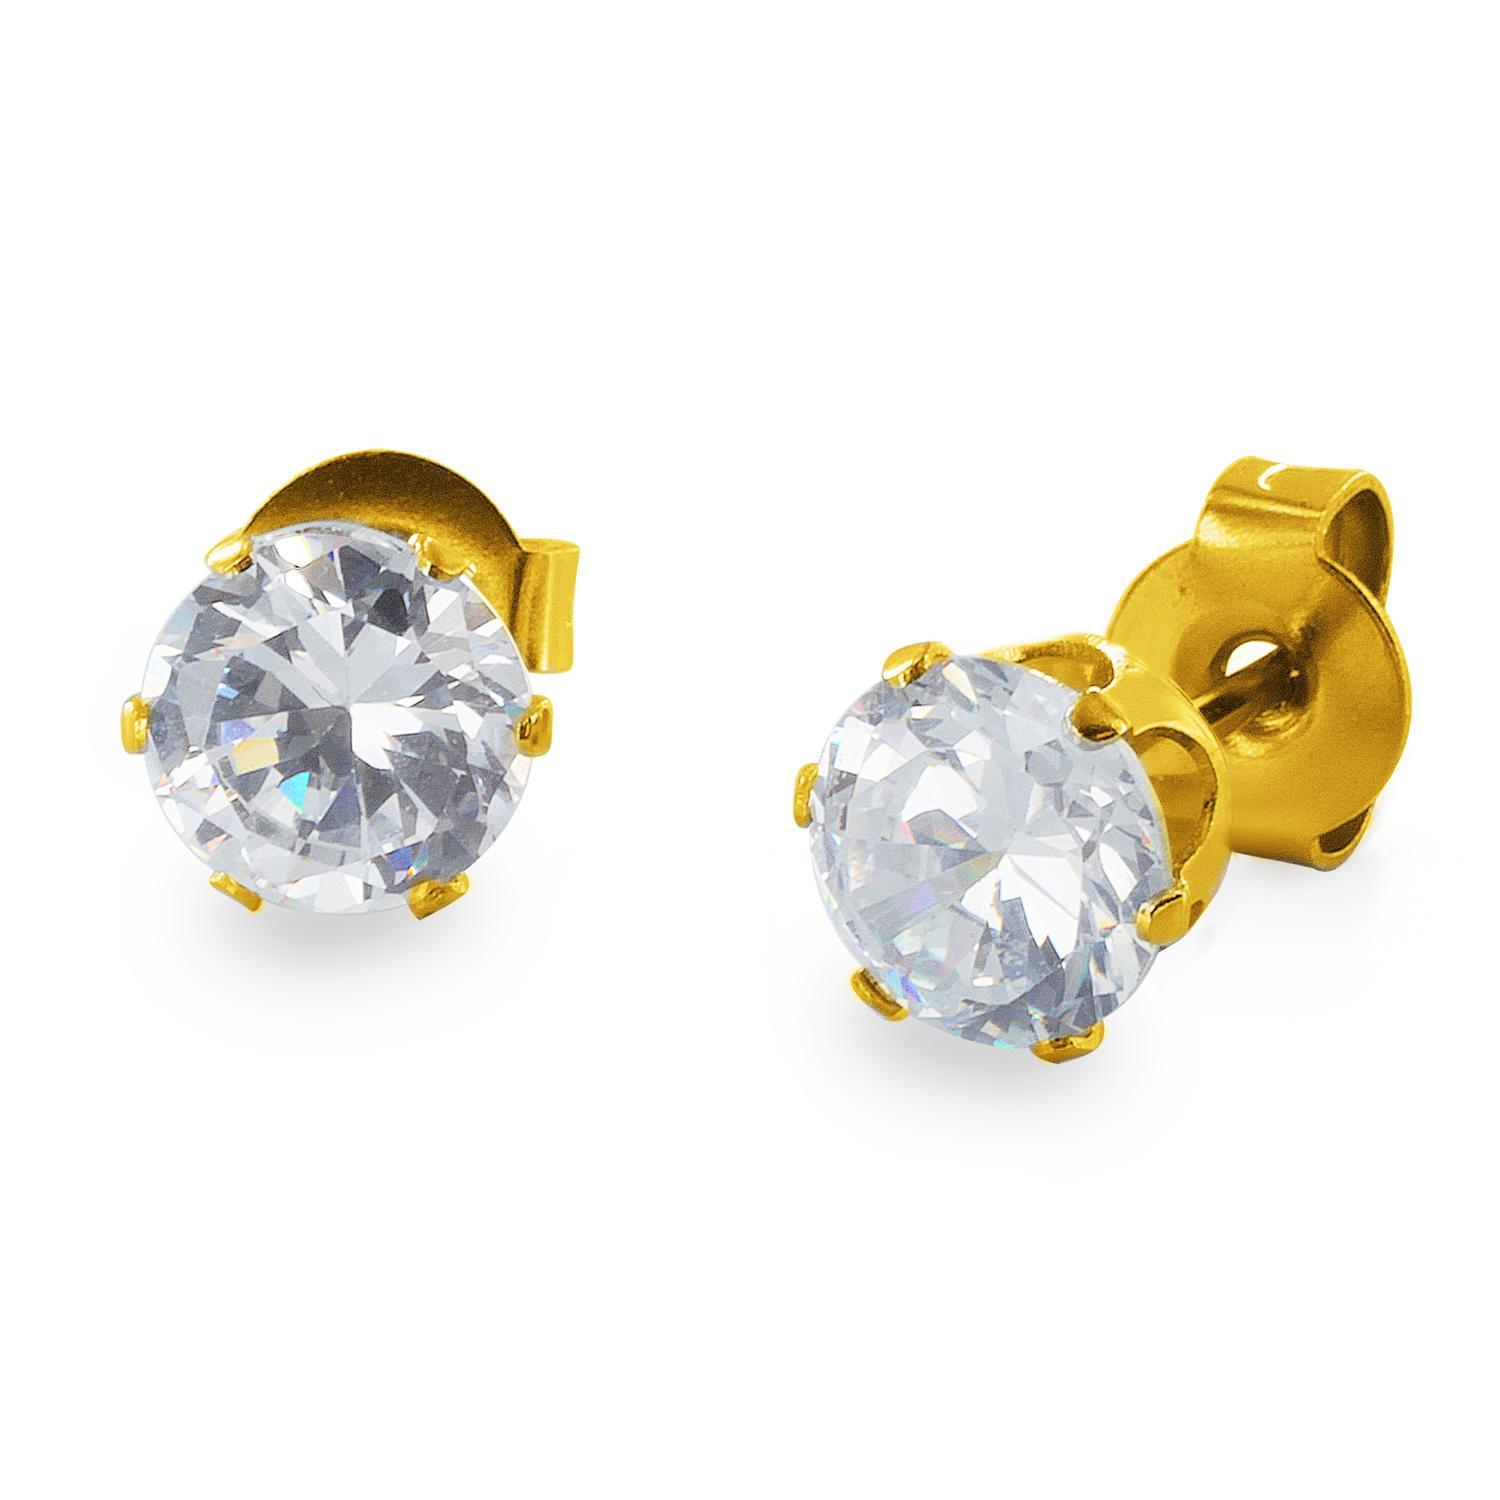 Gold Plated Stainless Steel Stud Earrings with Round Clear CZ - 4 mm